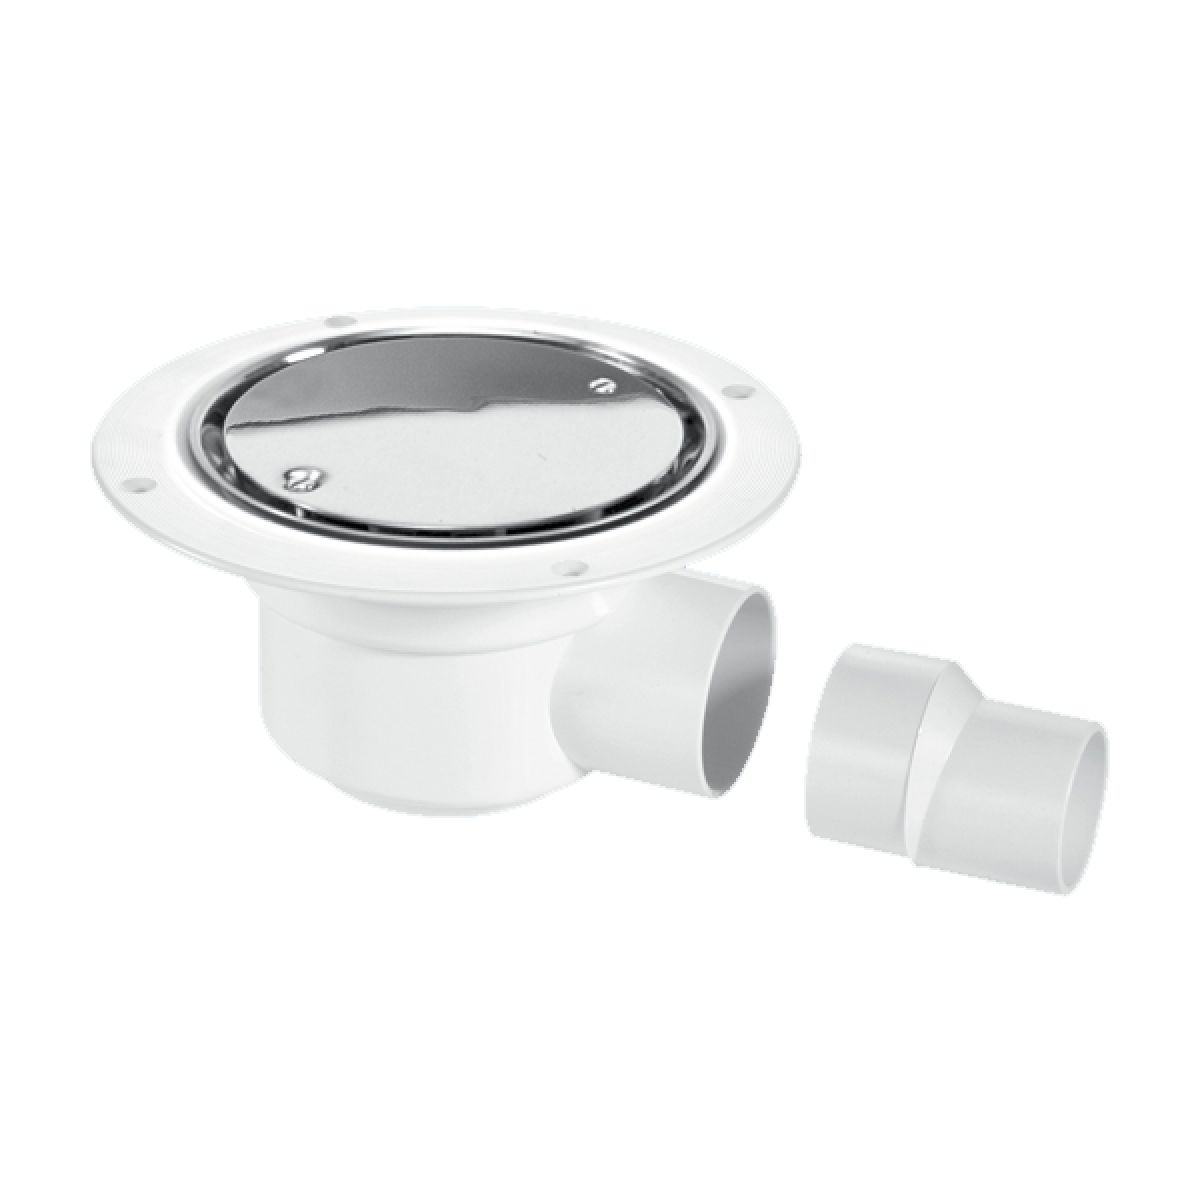 McAlpine TSG50SS 50mm Polished Stainless Steel Water Seal Trapped Gully